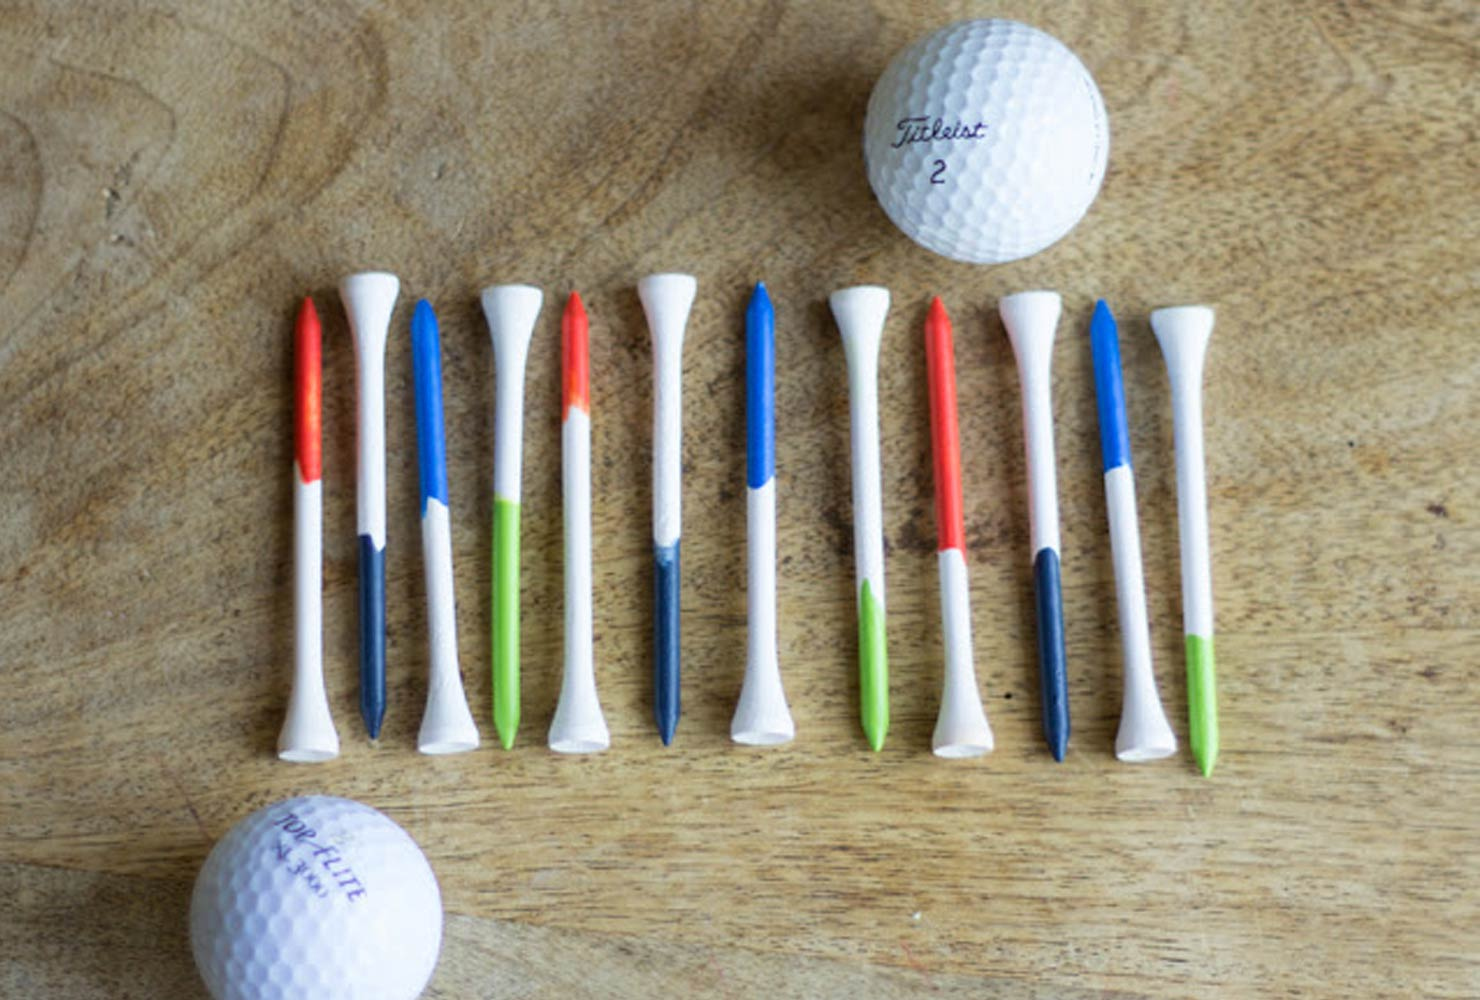 Paint dipped golf tees and golf balls.